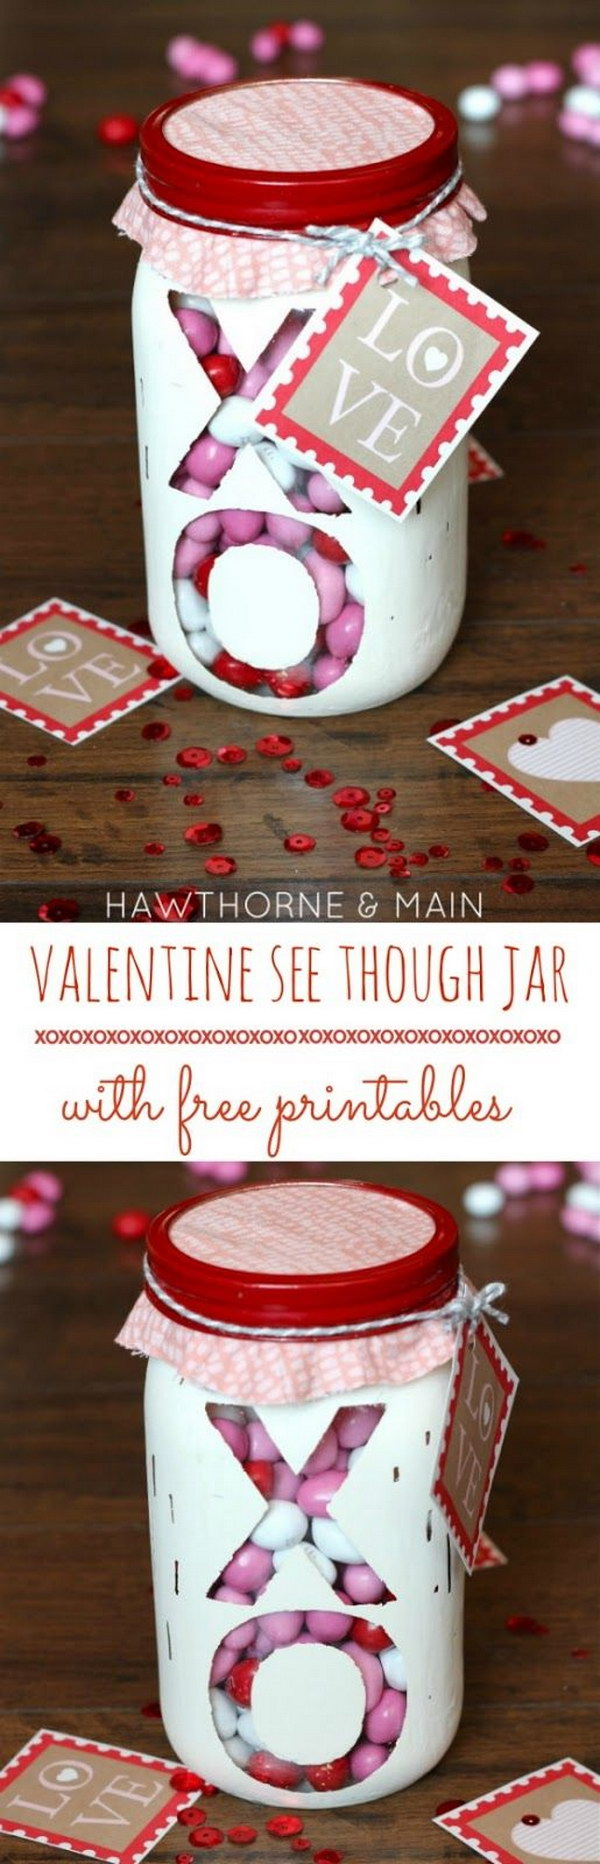 4 Valentine's Day See Through XO Jar with Free Printable